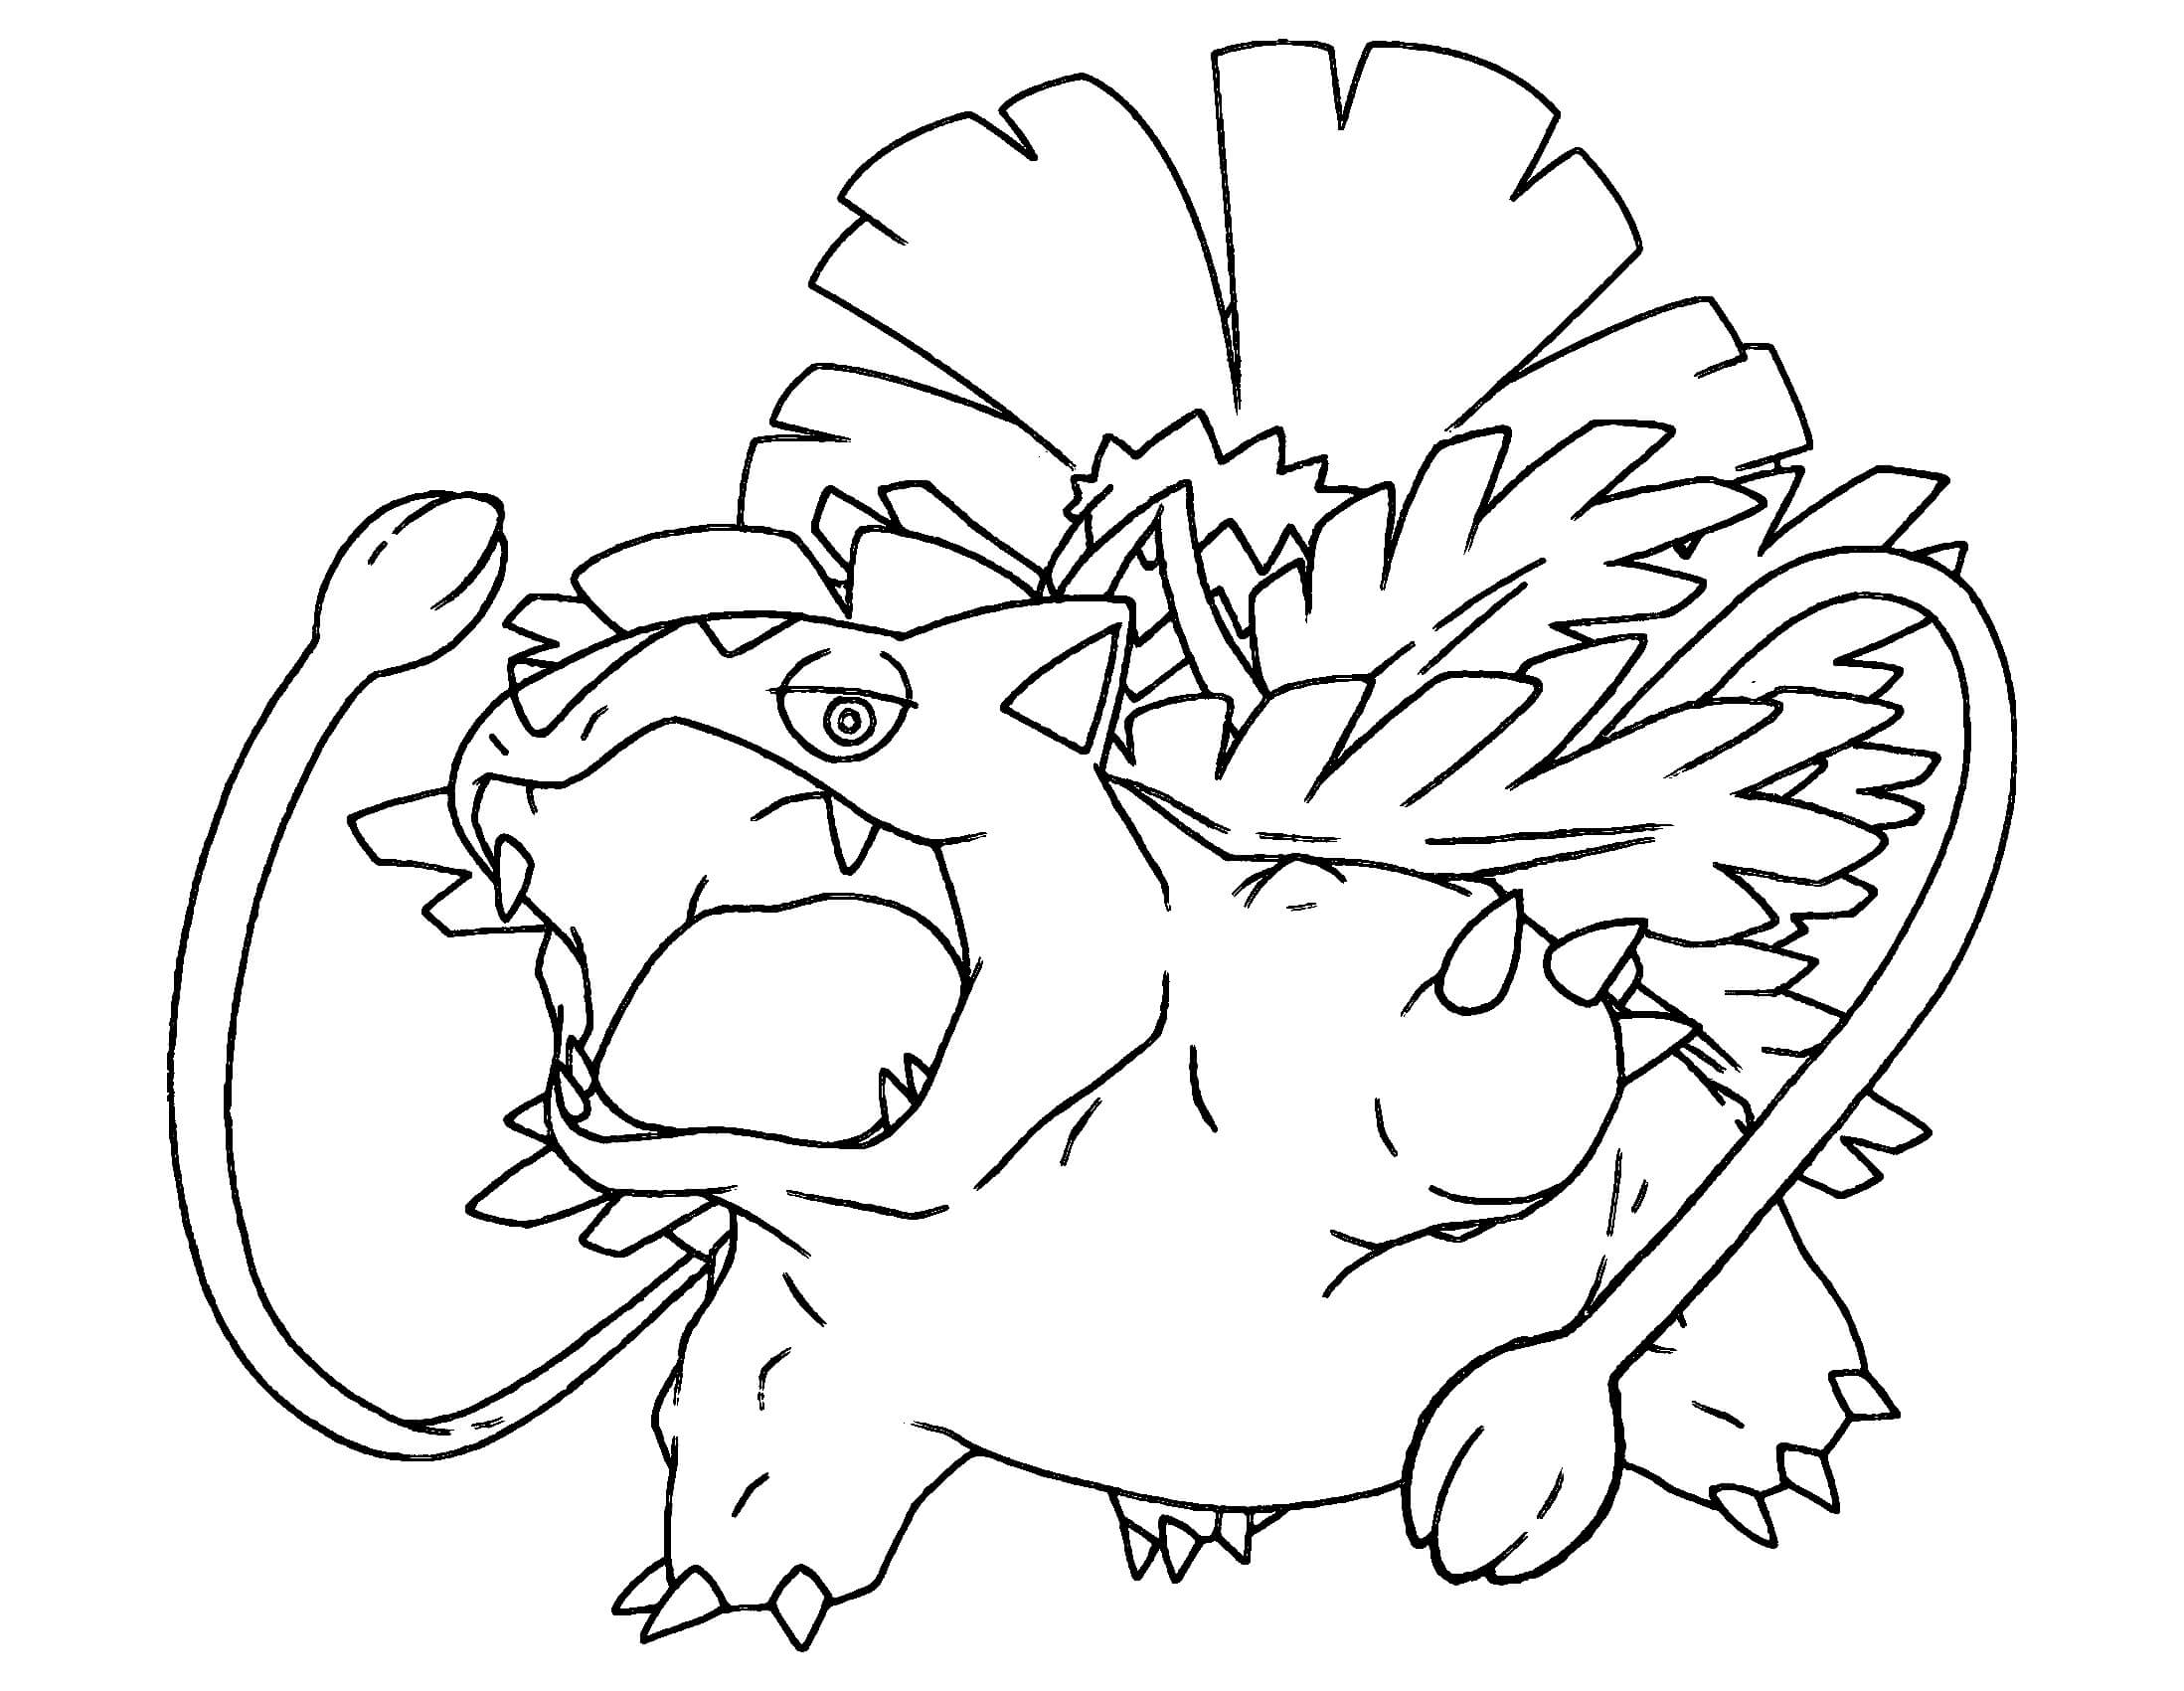 Venusaur Drawing at GetDrawings